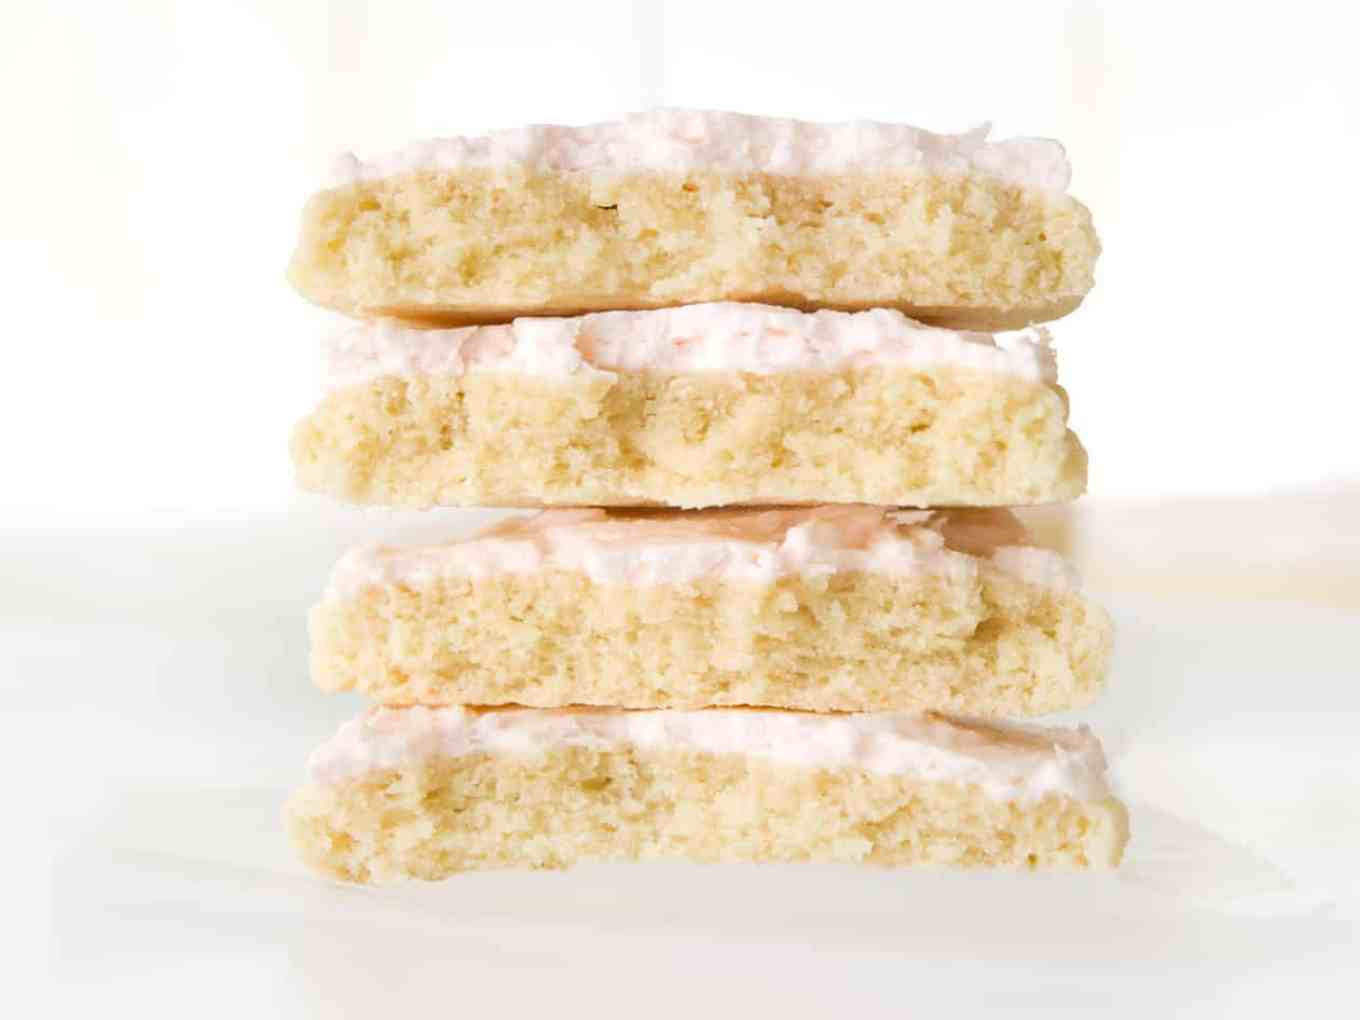 Stack of two large sugar cookies with pink frosting, cut in half.